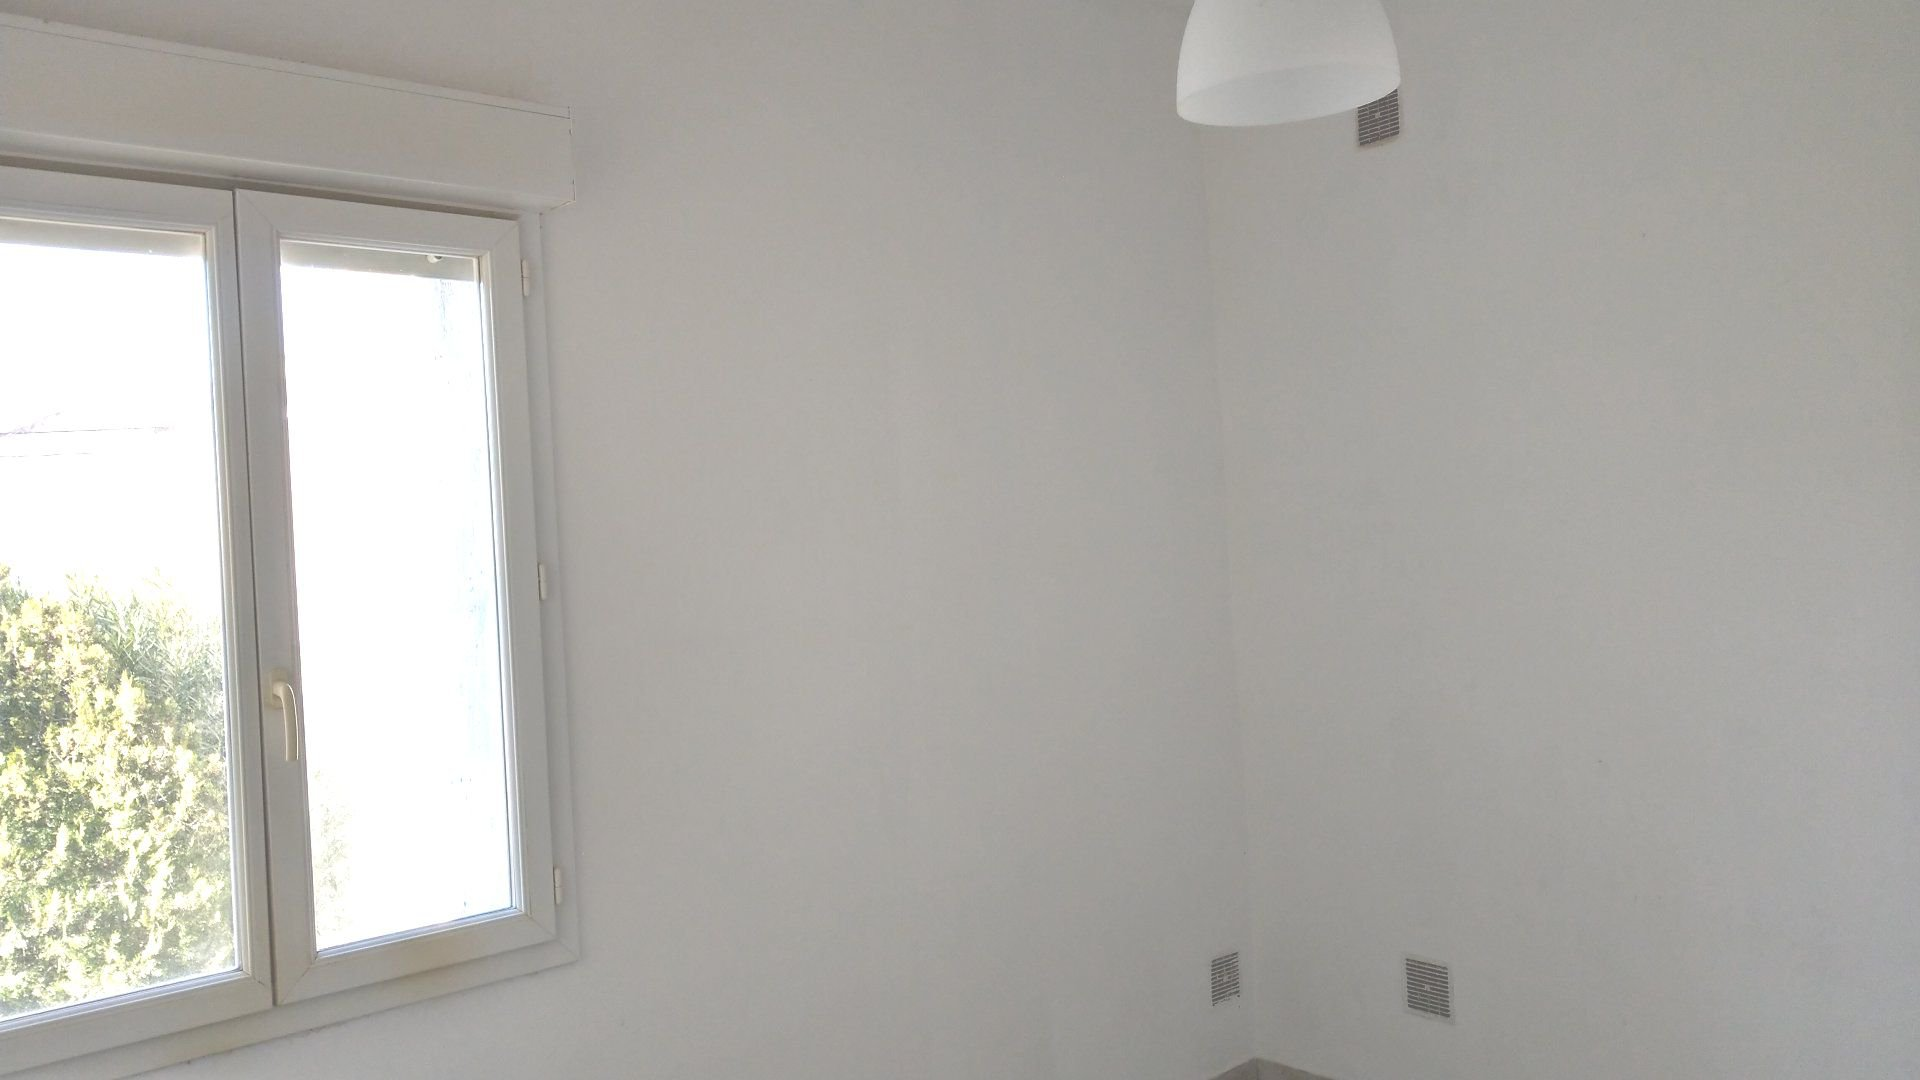 Appartement T2 dans belle maison Catalane